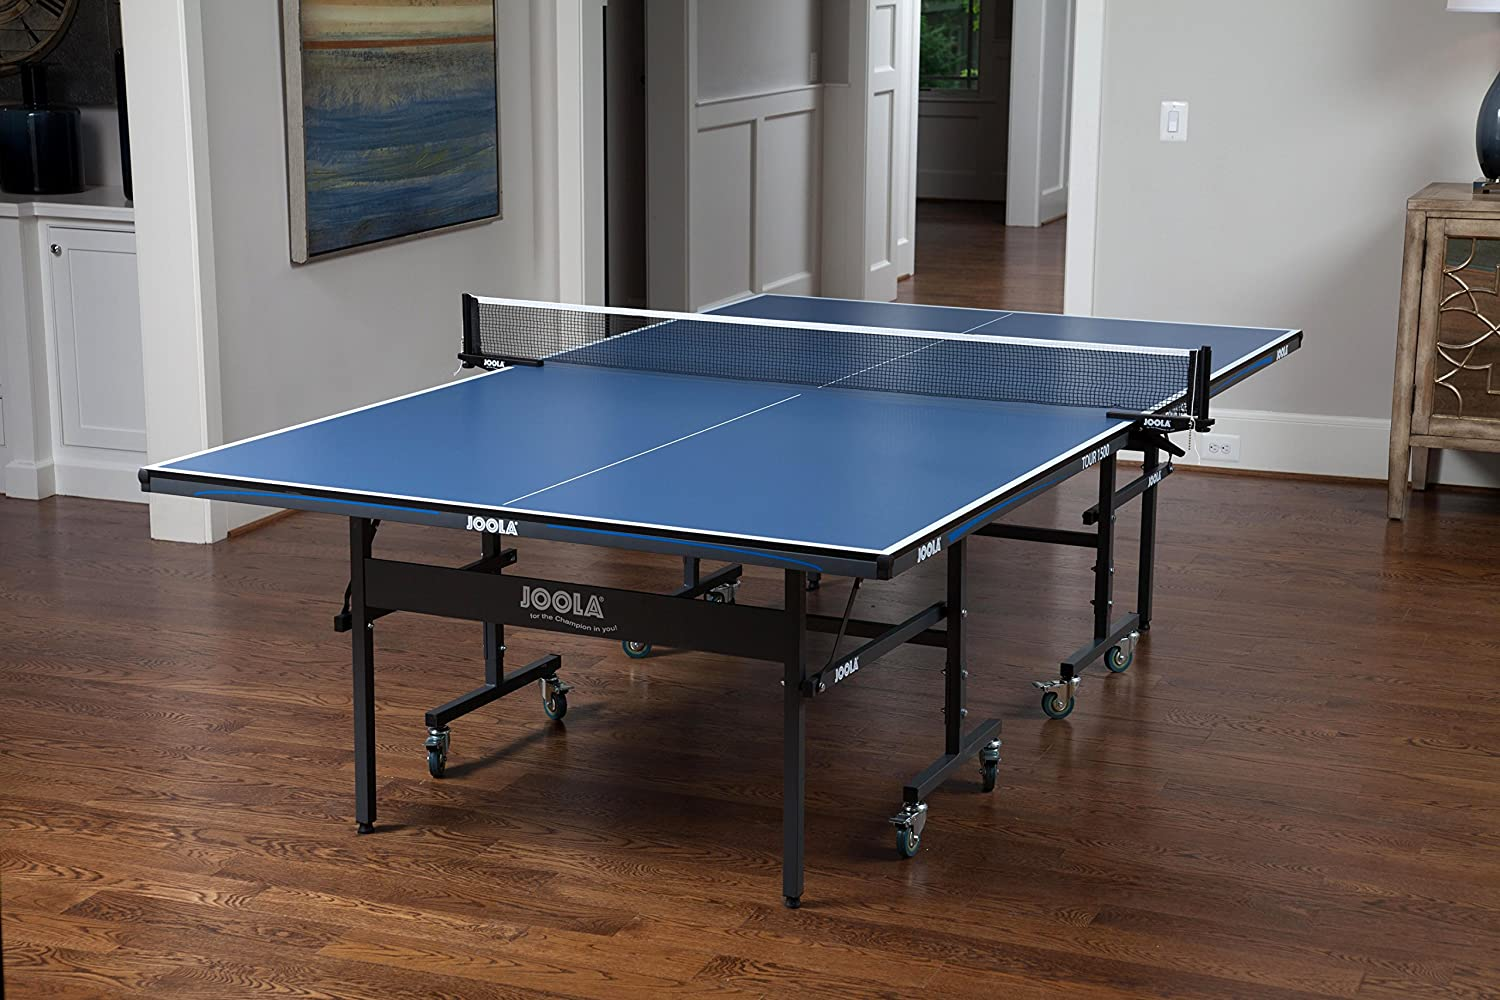 Amazon.com : JOOLA 15mm Tour 1500 Indoor Table Tennis Table and Net ...